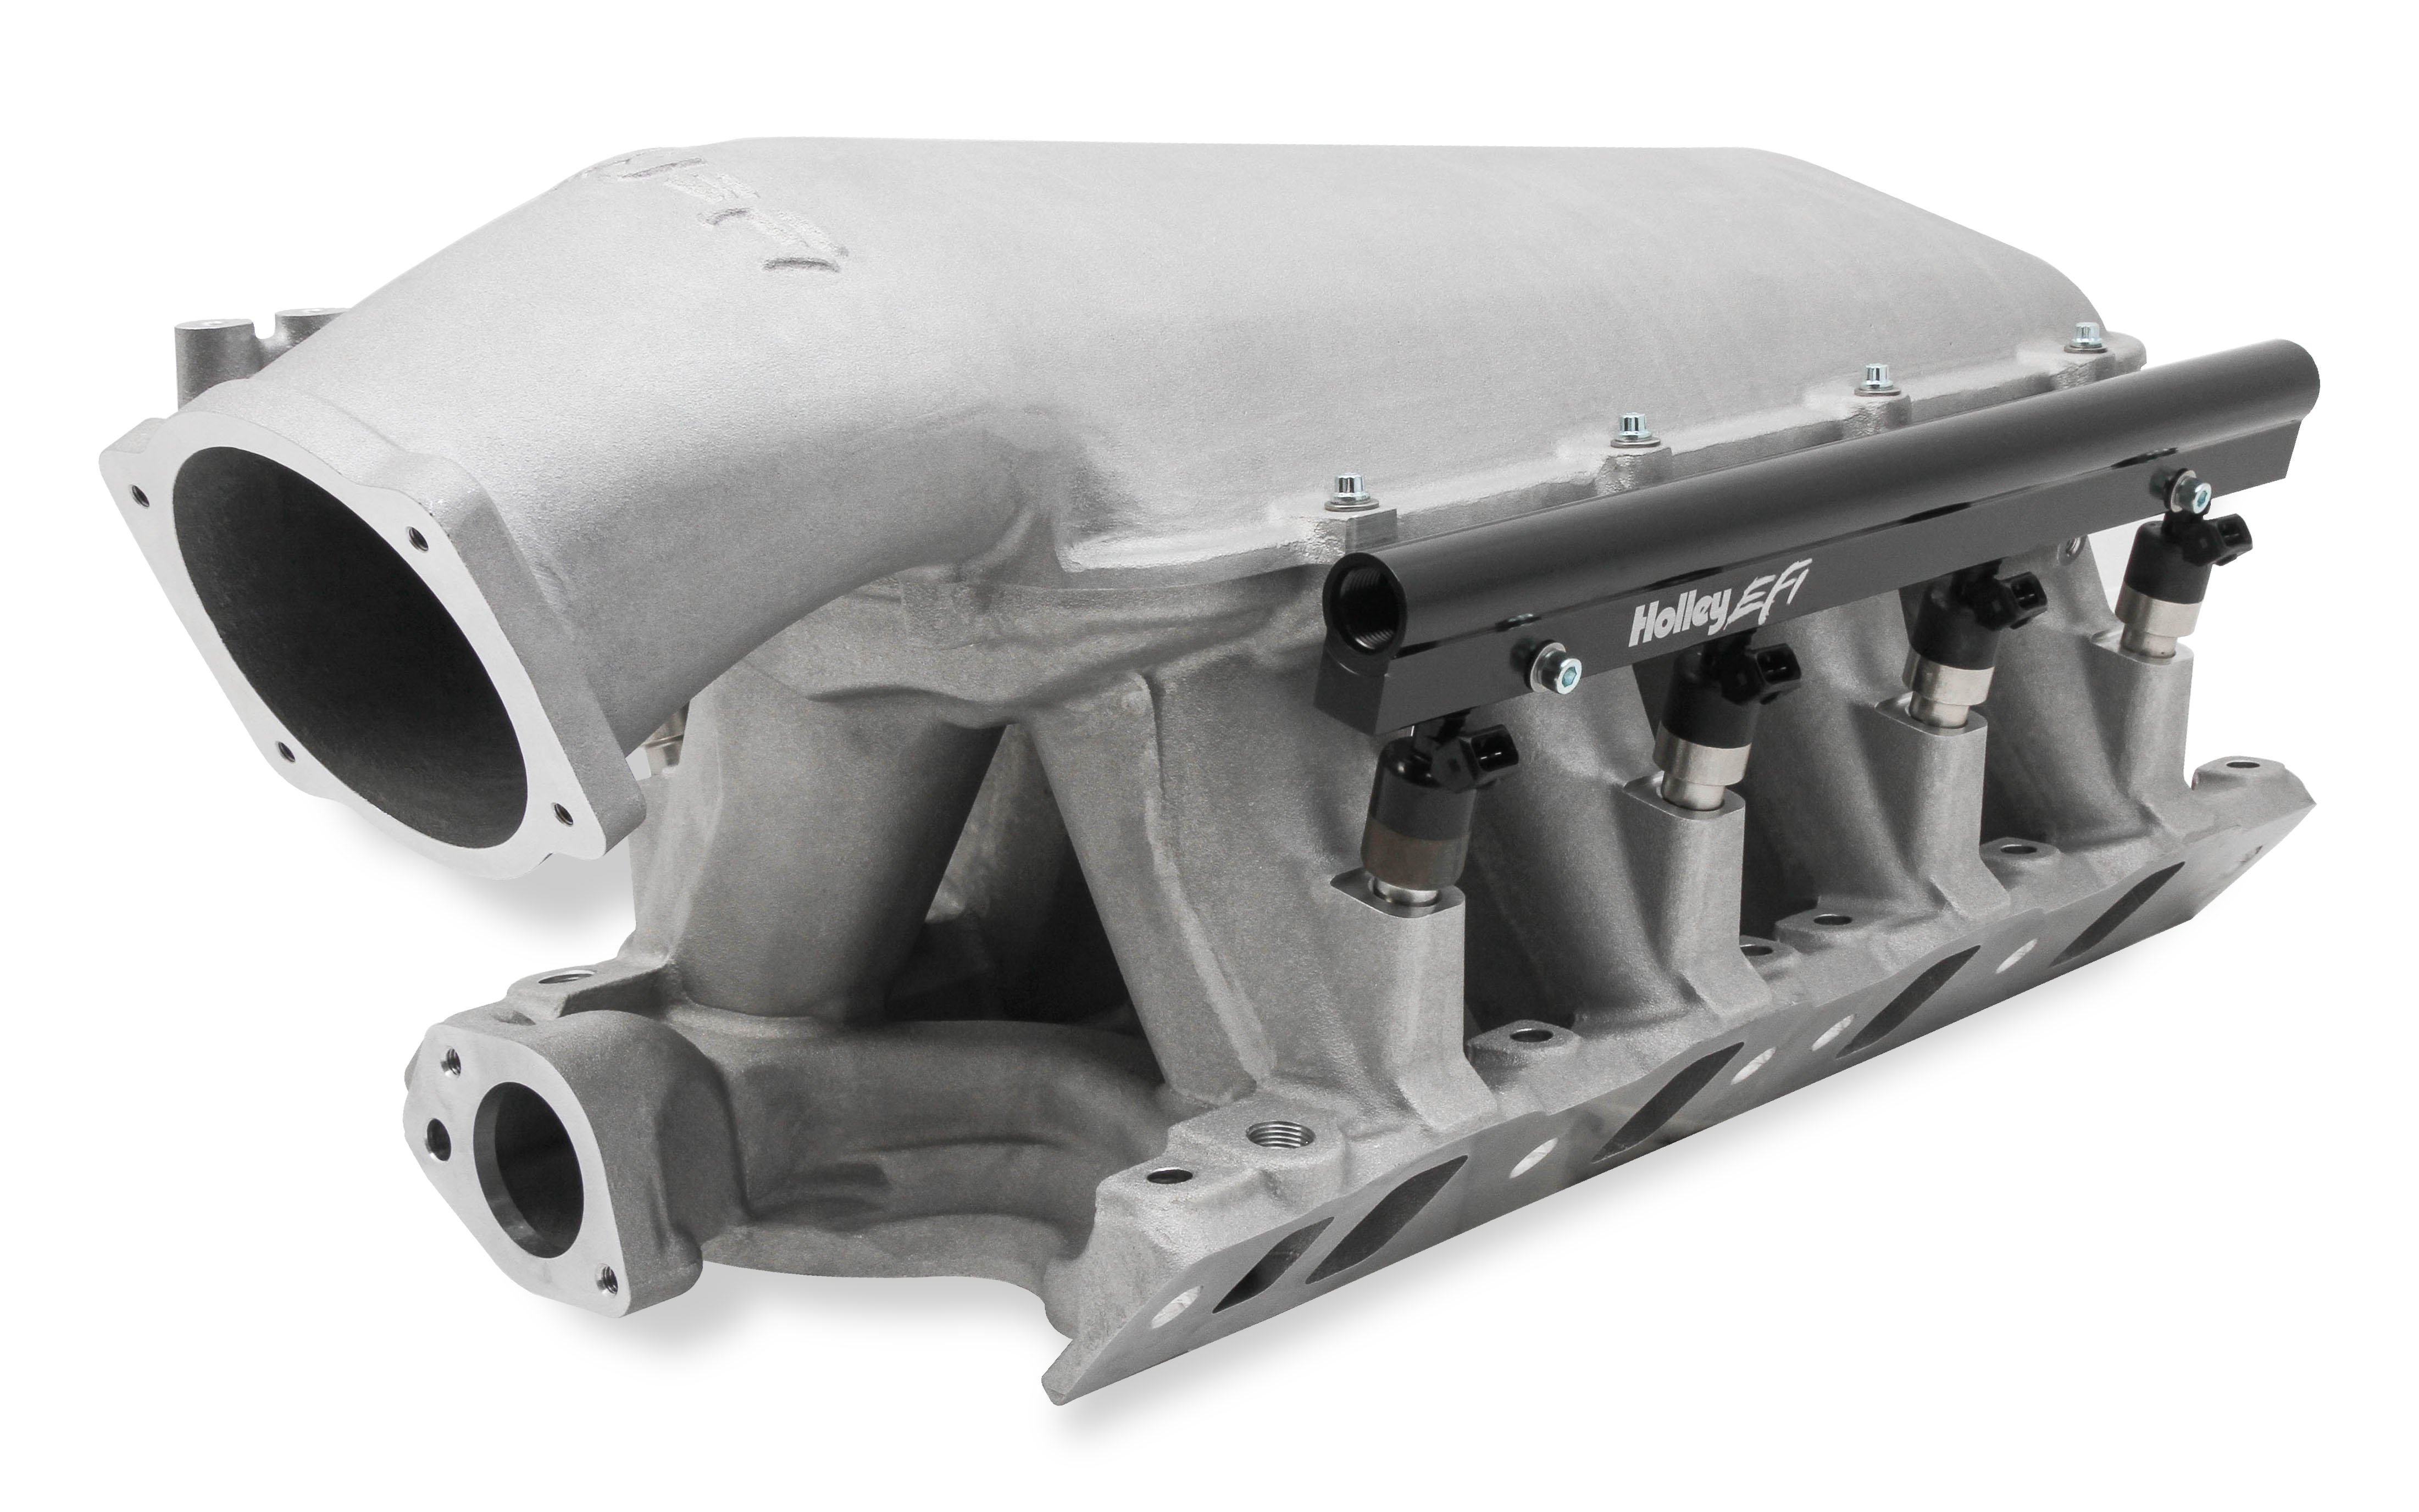 300-242 - Holley 351W Ford Hi-Ram EFI Manifold Image